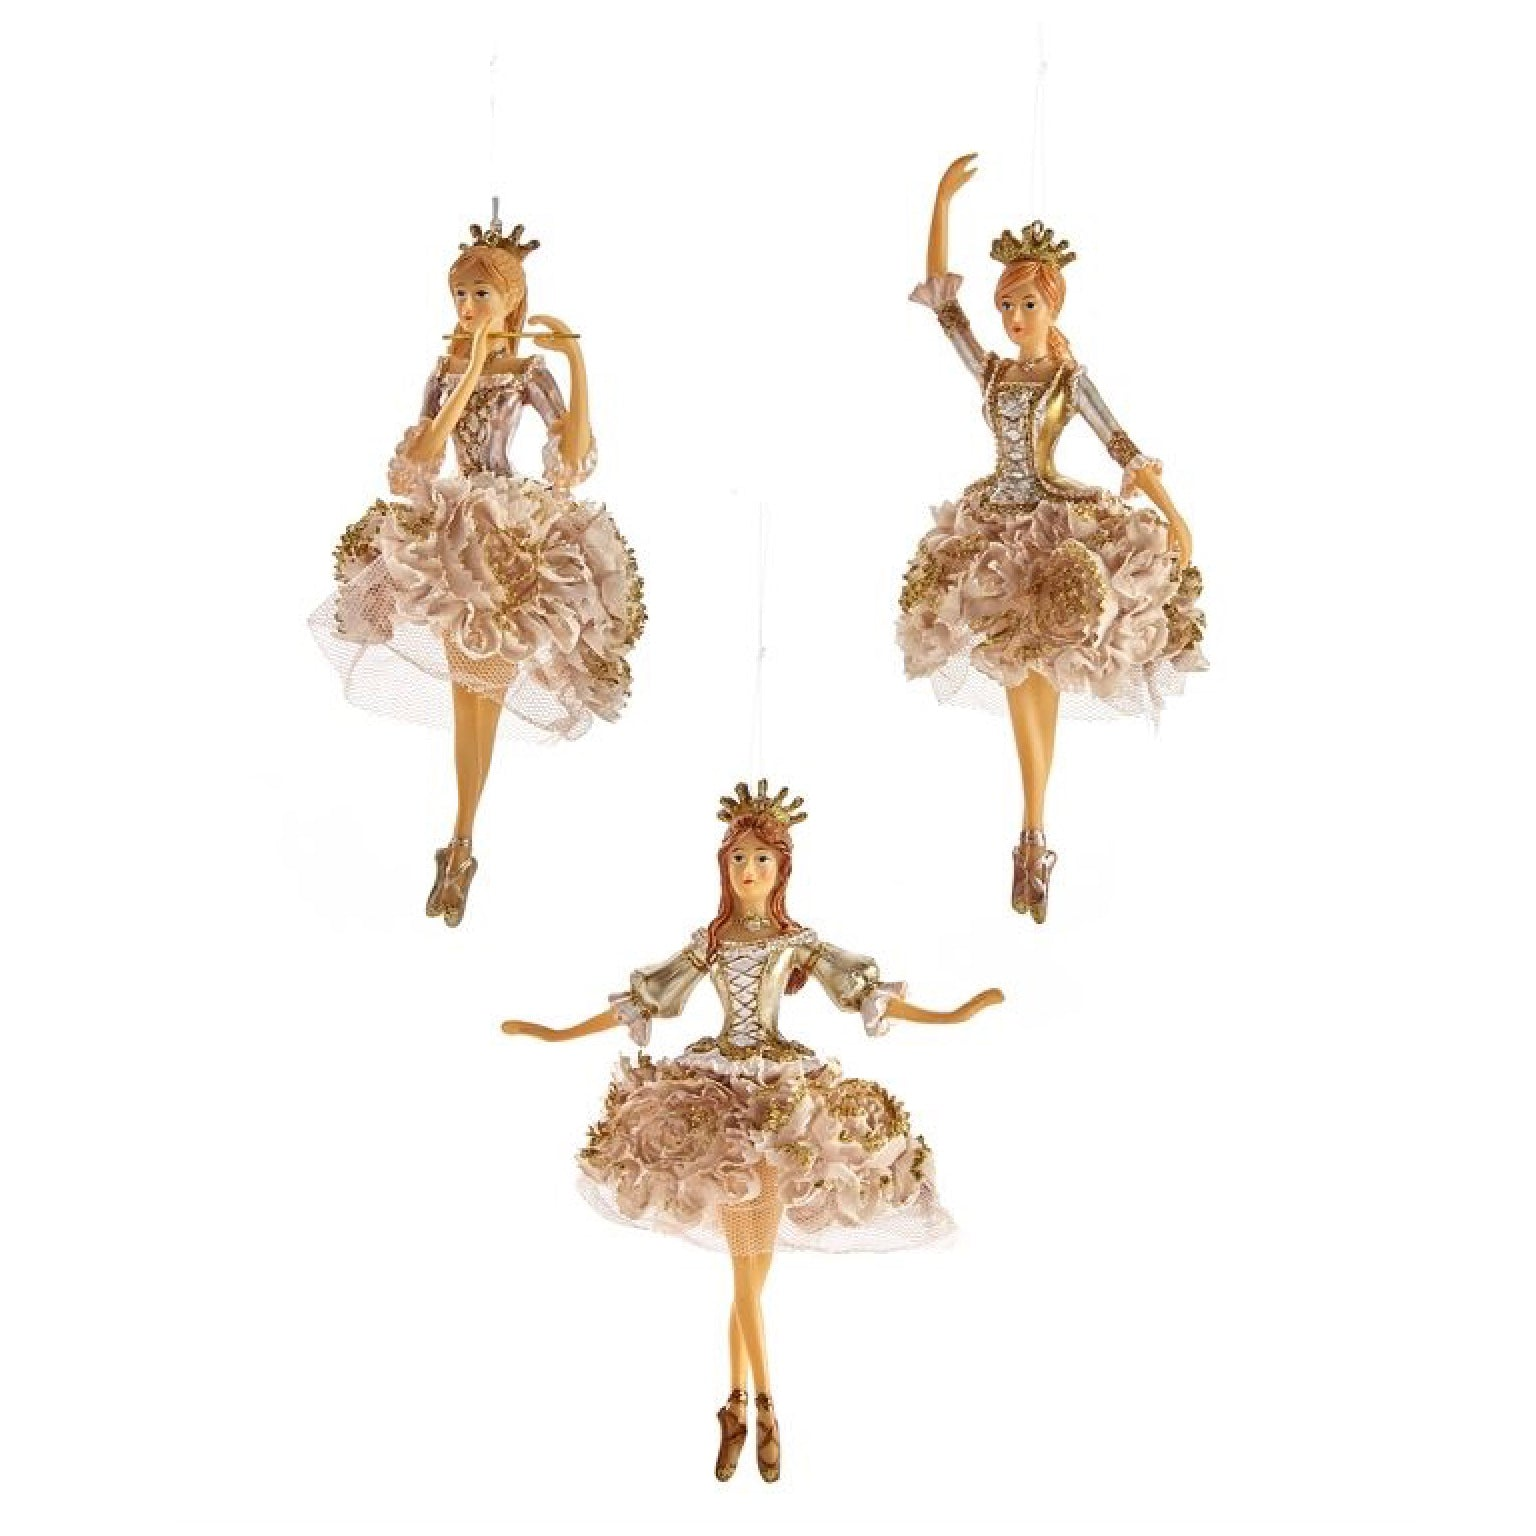 Champagne Ballerina Ornament | Putti Christmas Celebrations